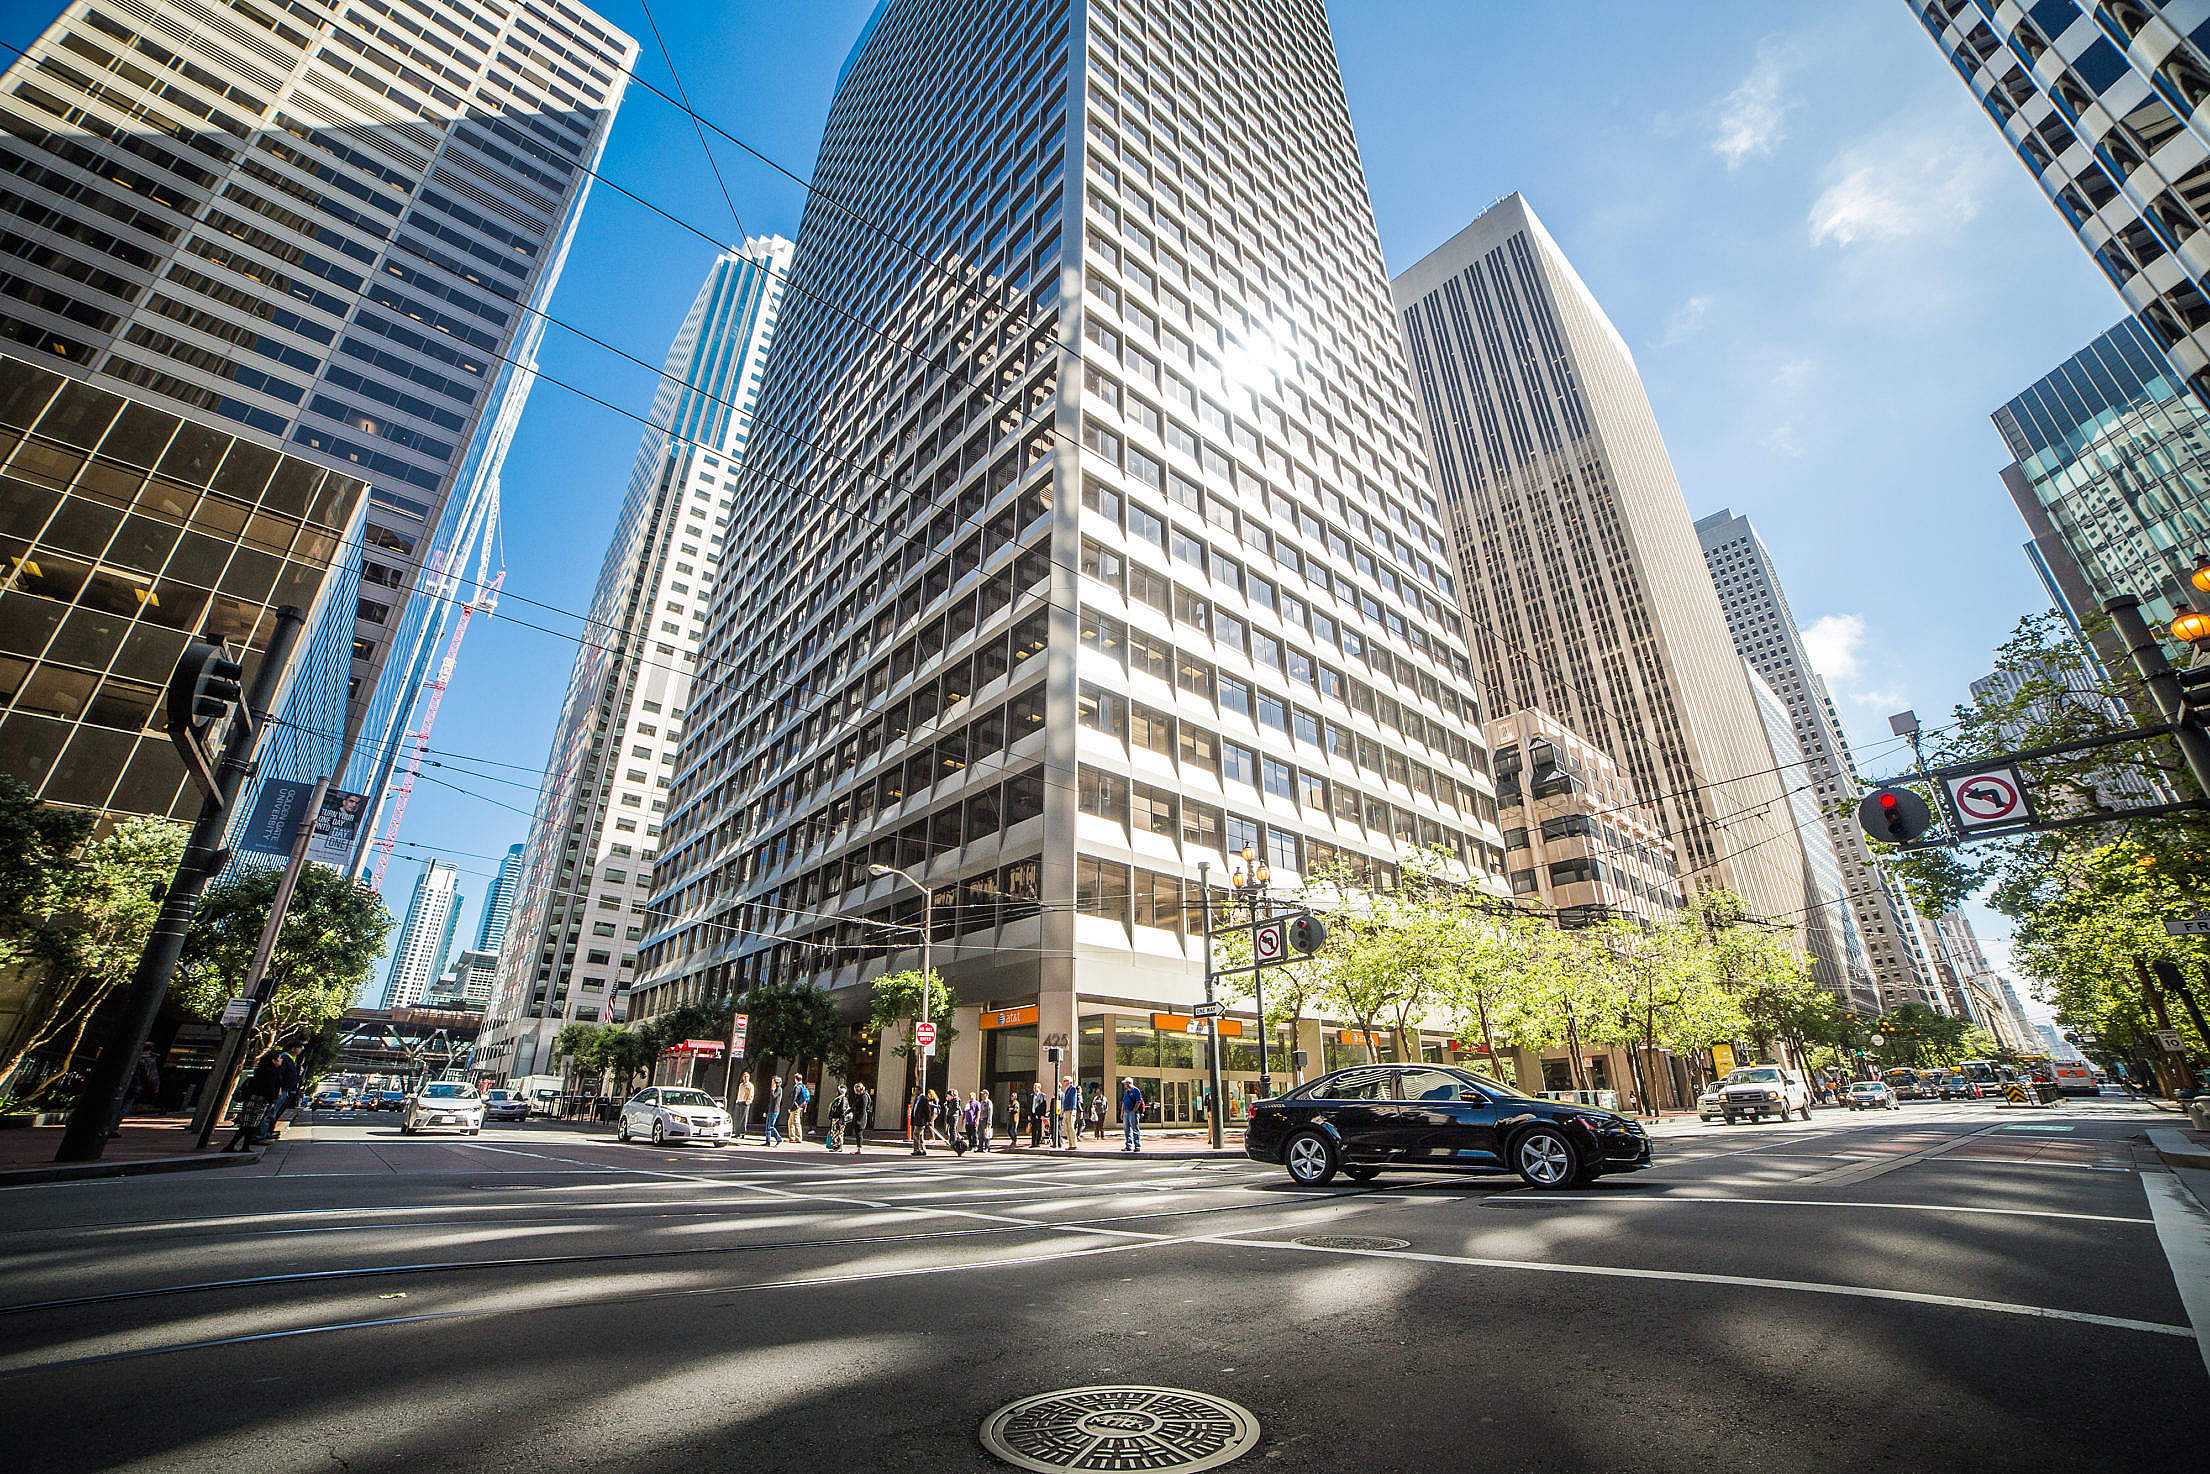 Fisheye Shot of Streets and Skyscrapers in a Big City Free Stock Photo